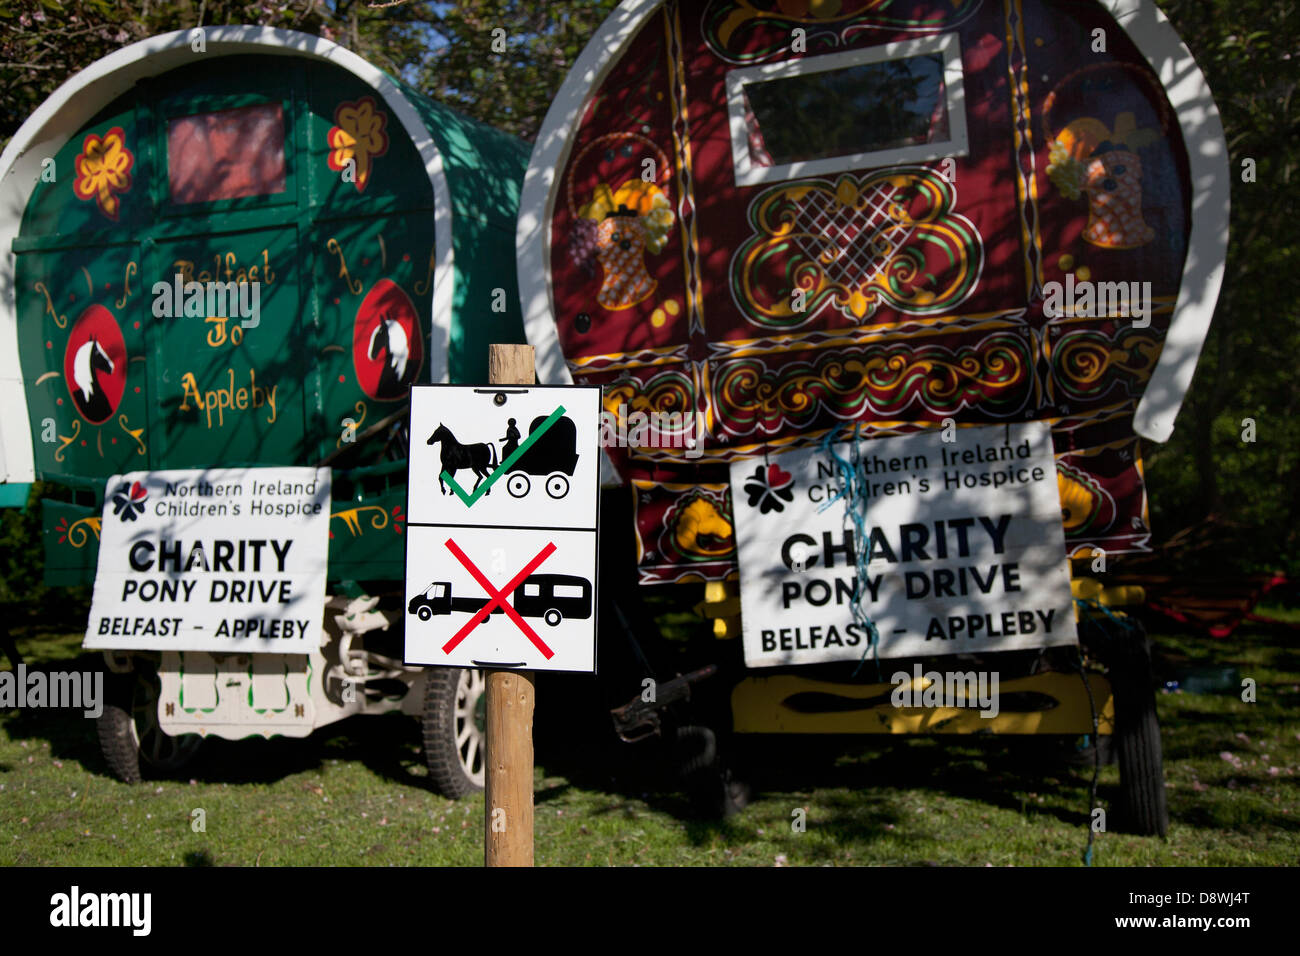 Charity Pony Drive, Northern Ireland Children's Hospice Bow top Trailer homes. Accommodation at Kirkby Stephen, - Stock Image